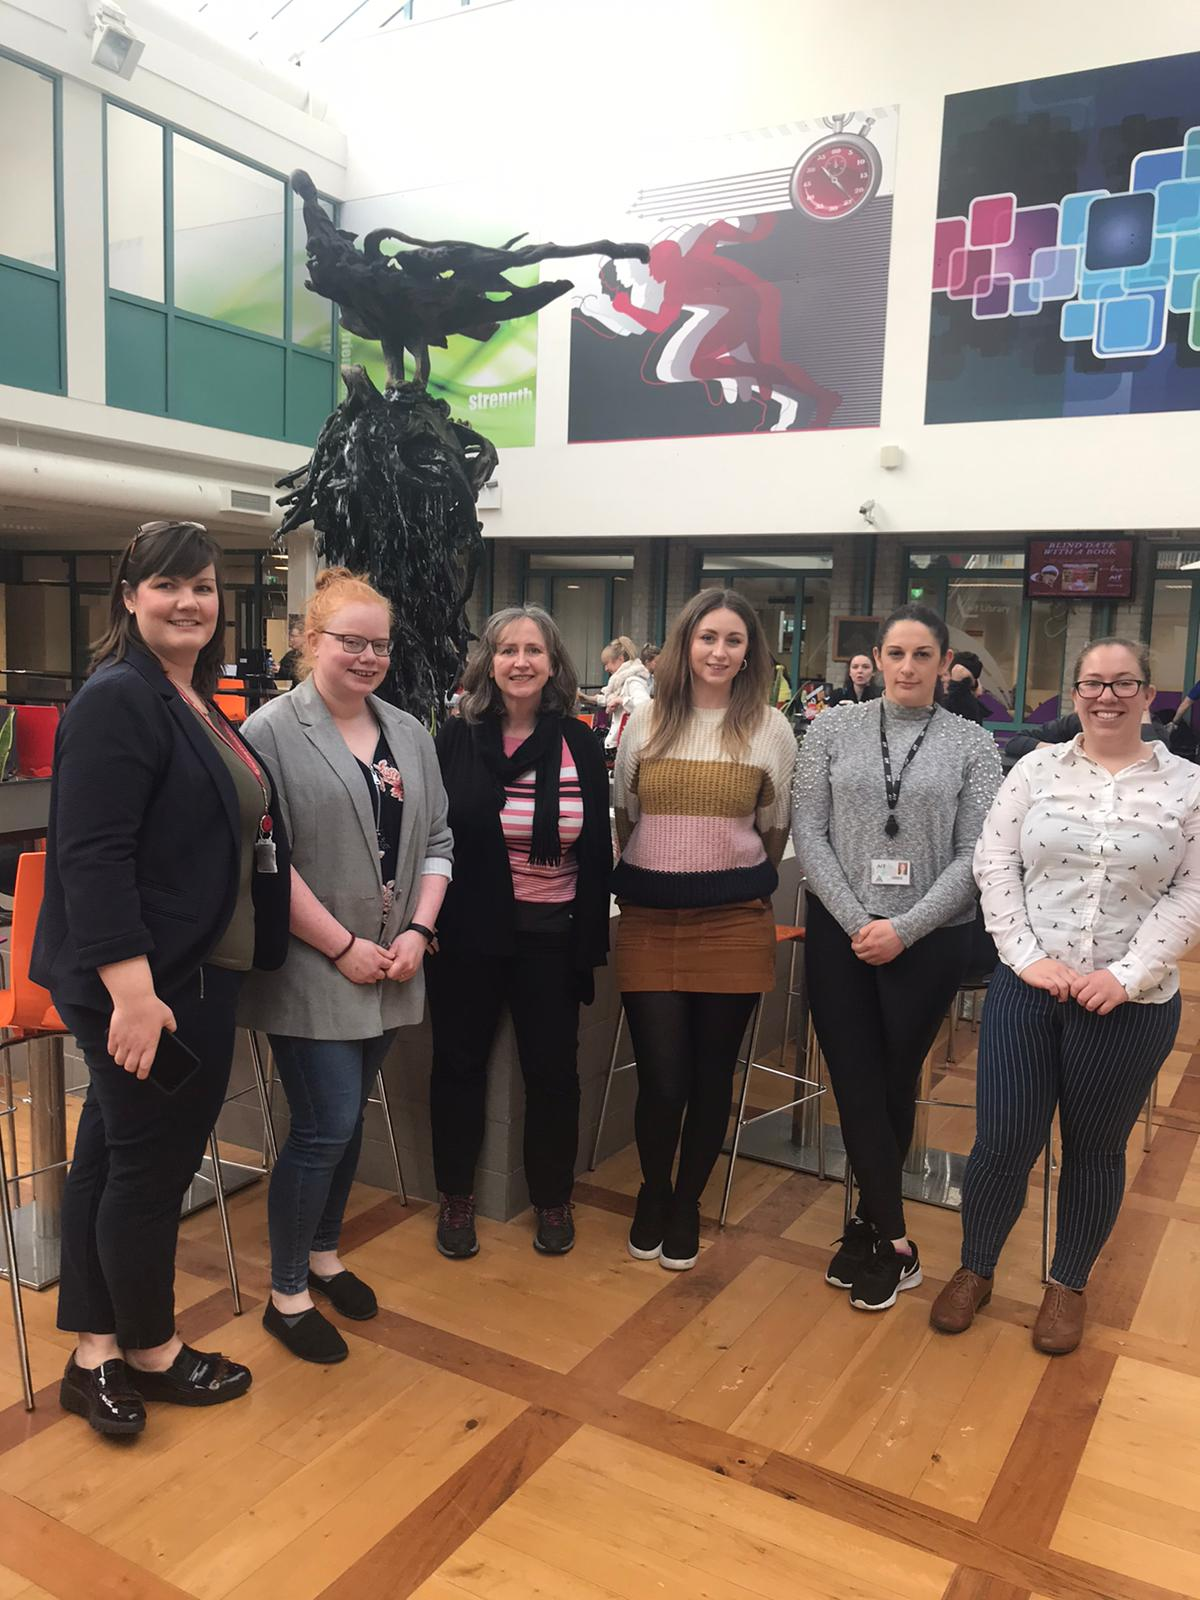 Career talks in Applied Bioscience given to students of the BSc(Hons) in Bioveterinary Science programme. Included are the Programme Coordinator, Dr. Sile O'Flaherty and Gillian Coughlan, Lecturer in Veterinary Nursing